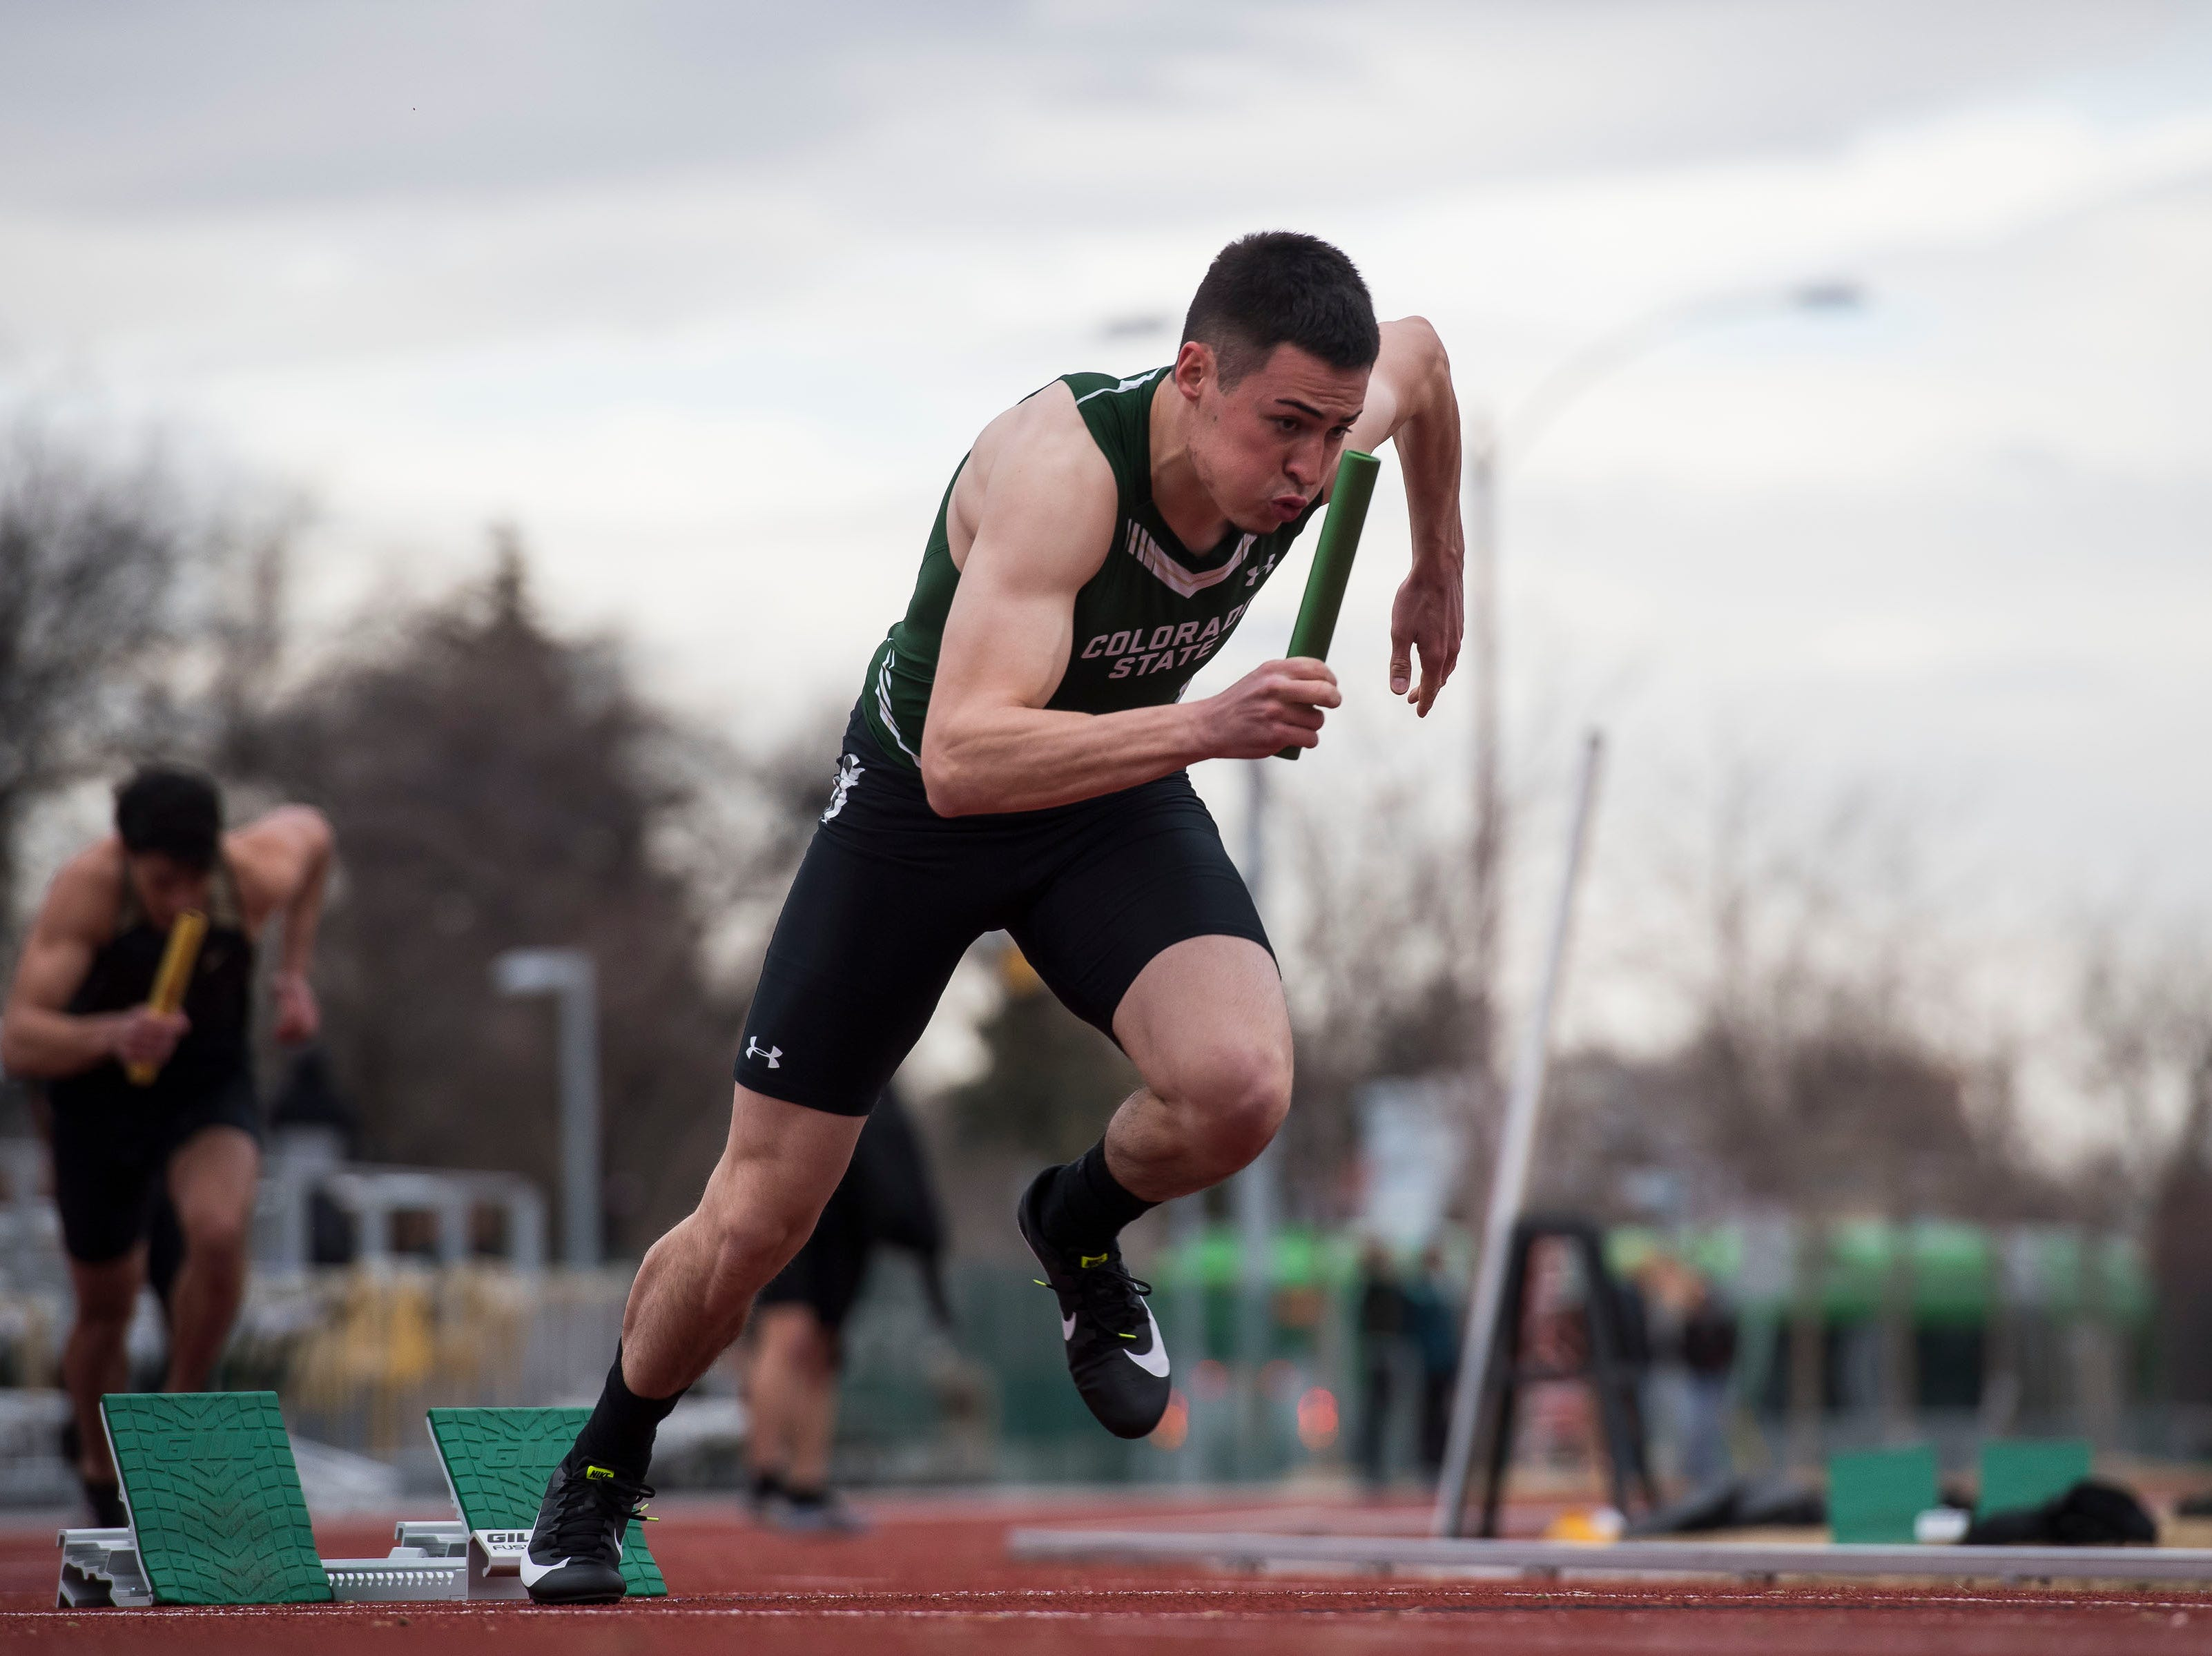 Colorado State University freshman Aaron Eurekcomes off the blocks during the mens 4x400-meter relay on Saturday, March 23, 2019, at the Jack Christiansen Memorial Track in Fort Collins, Colo.